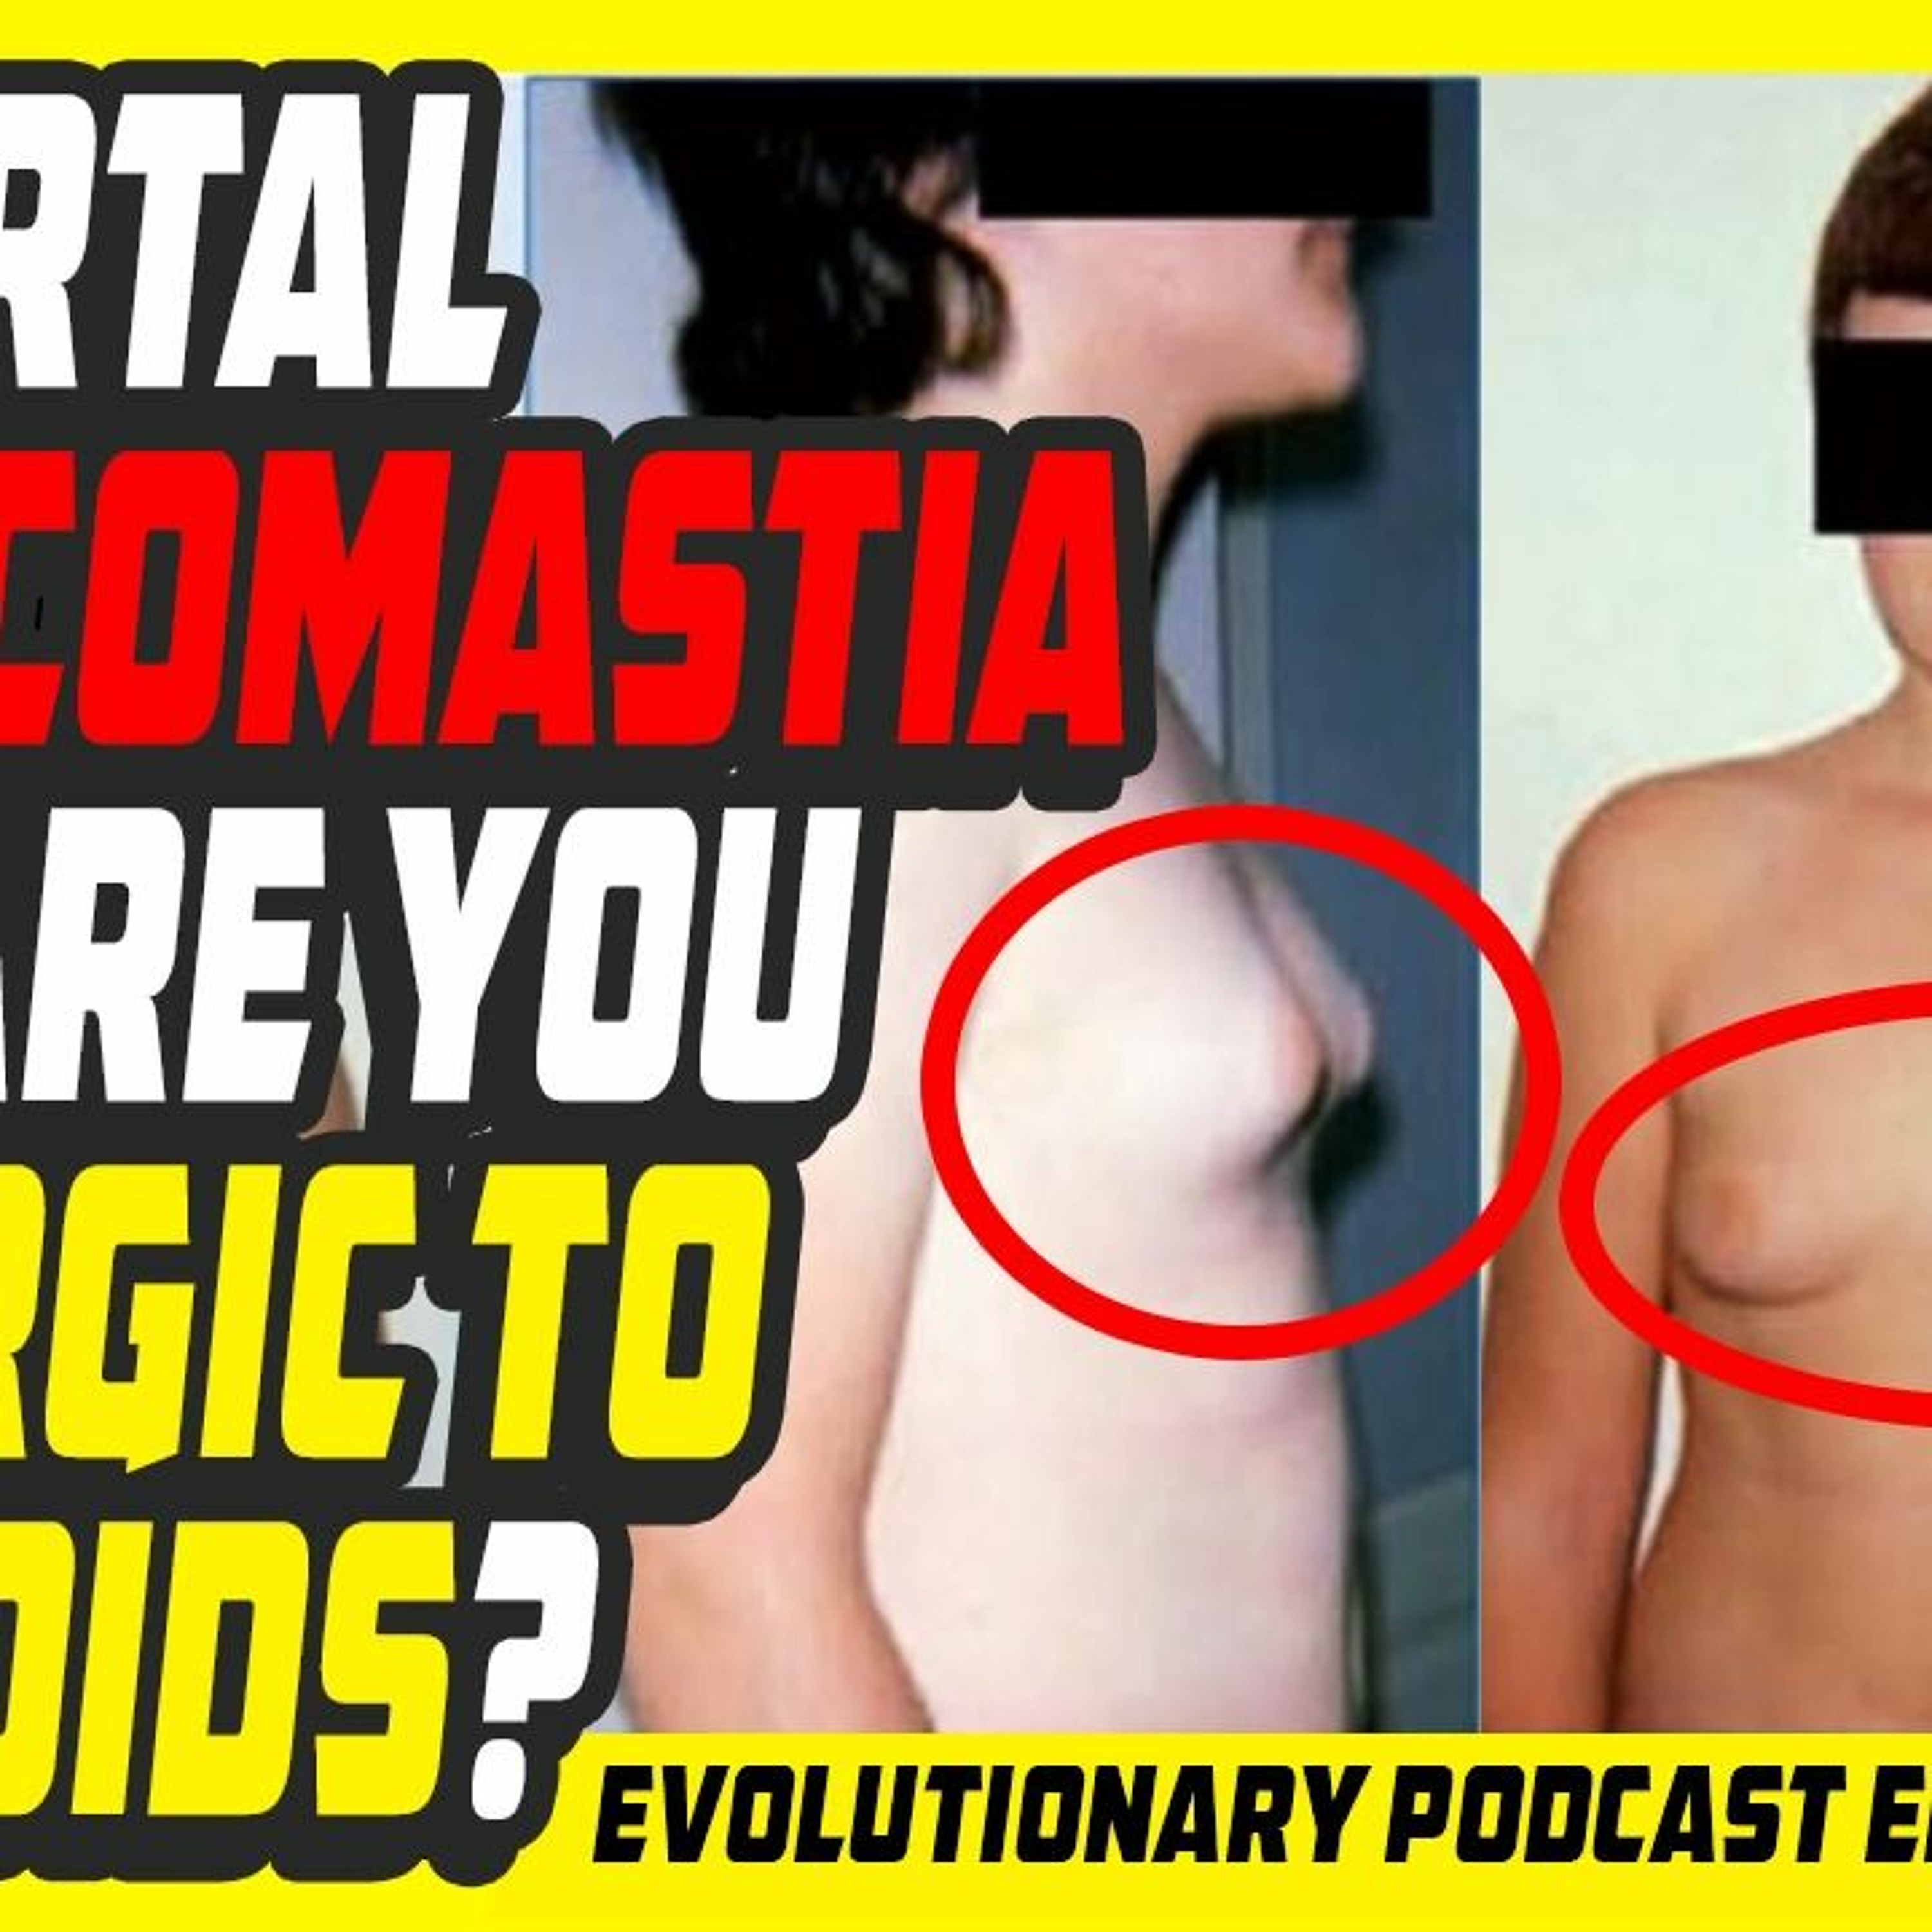 Evolutionary.org Podcast #407 - Pubertal gynecomastia and are you allergic to steroids?